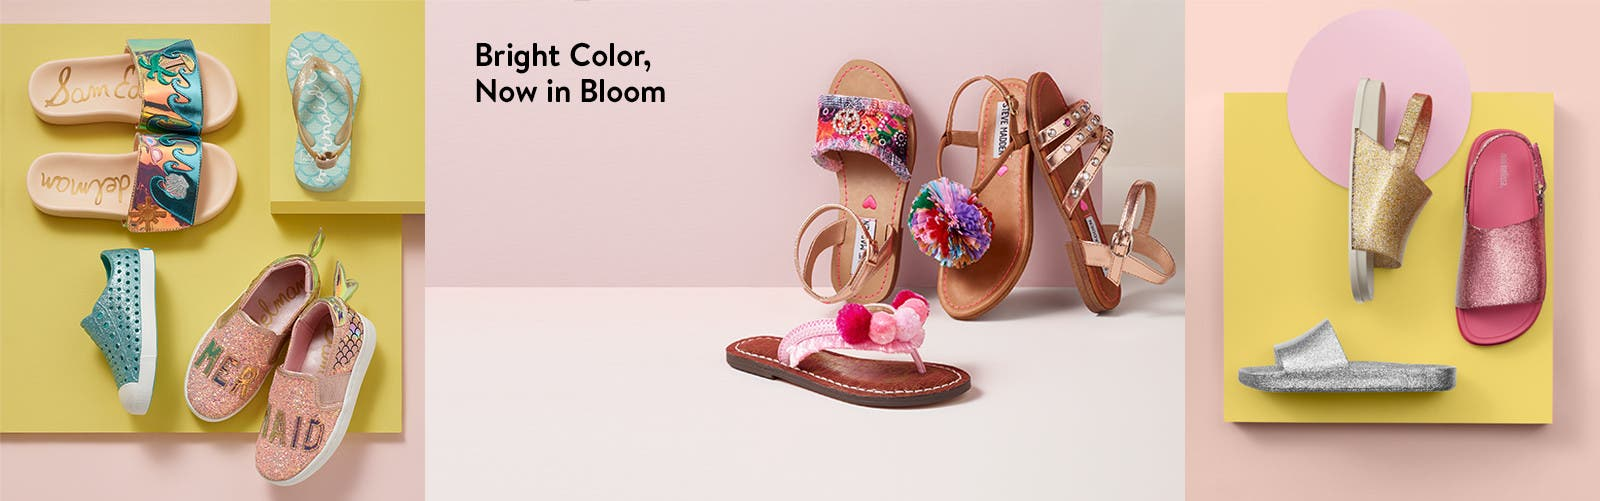 Girls' shoes in bright colors, now in bloom.